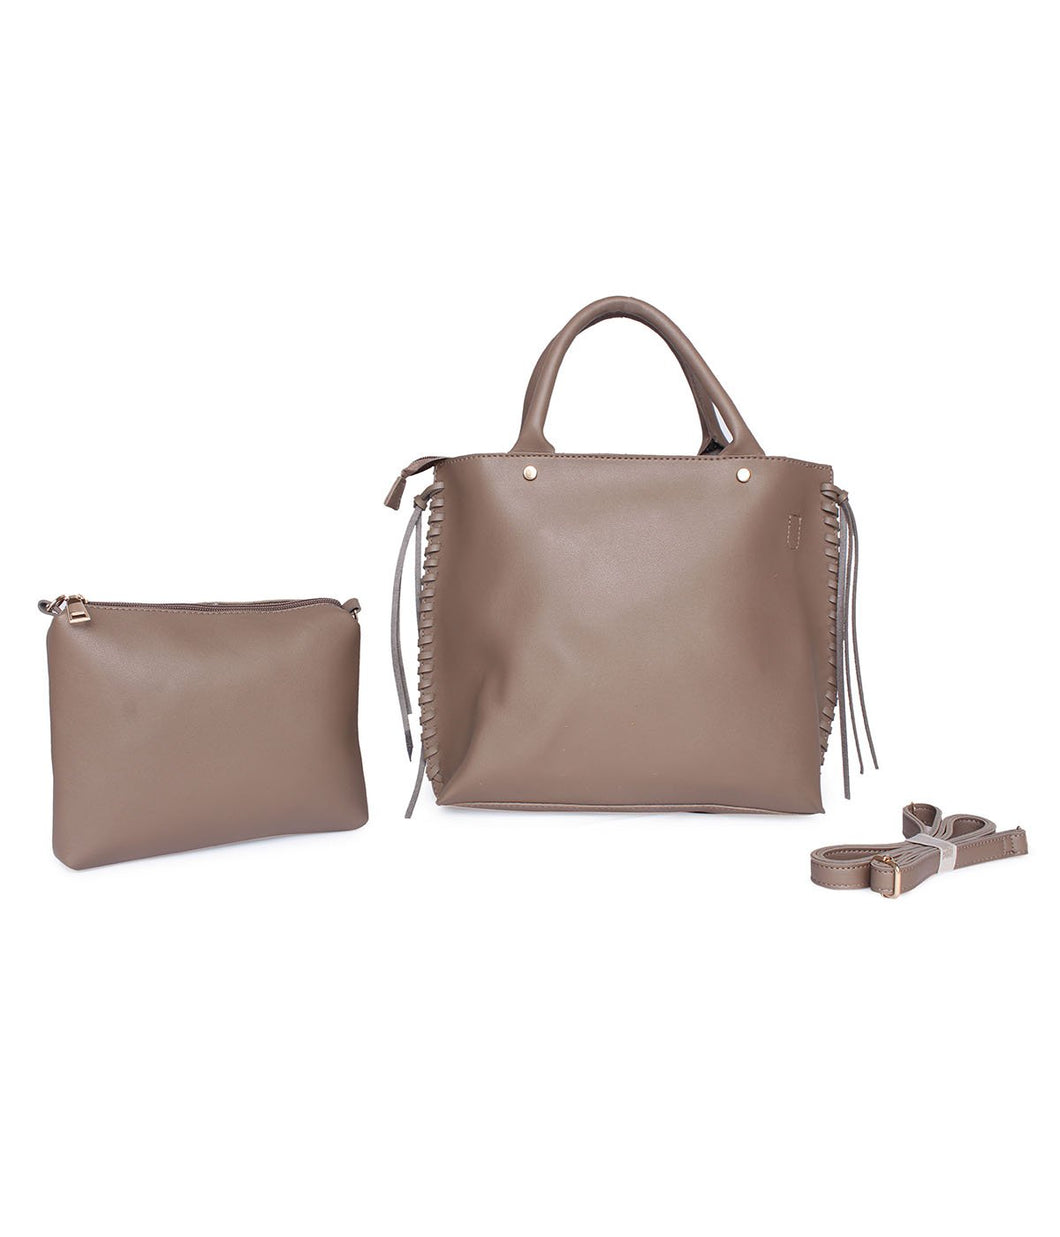 Roomy Structured Handbag-Beige